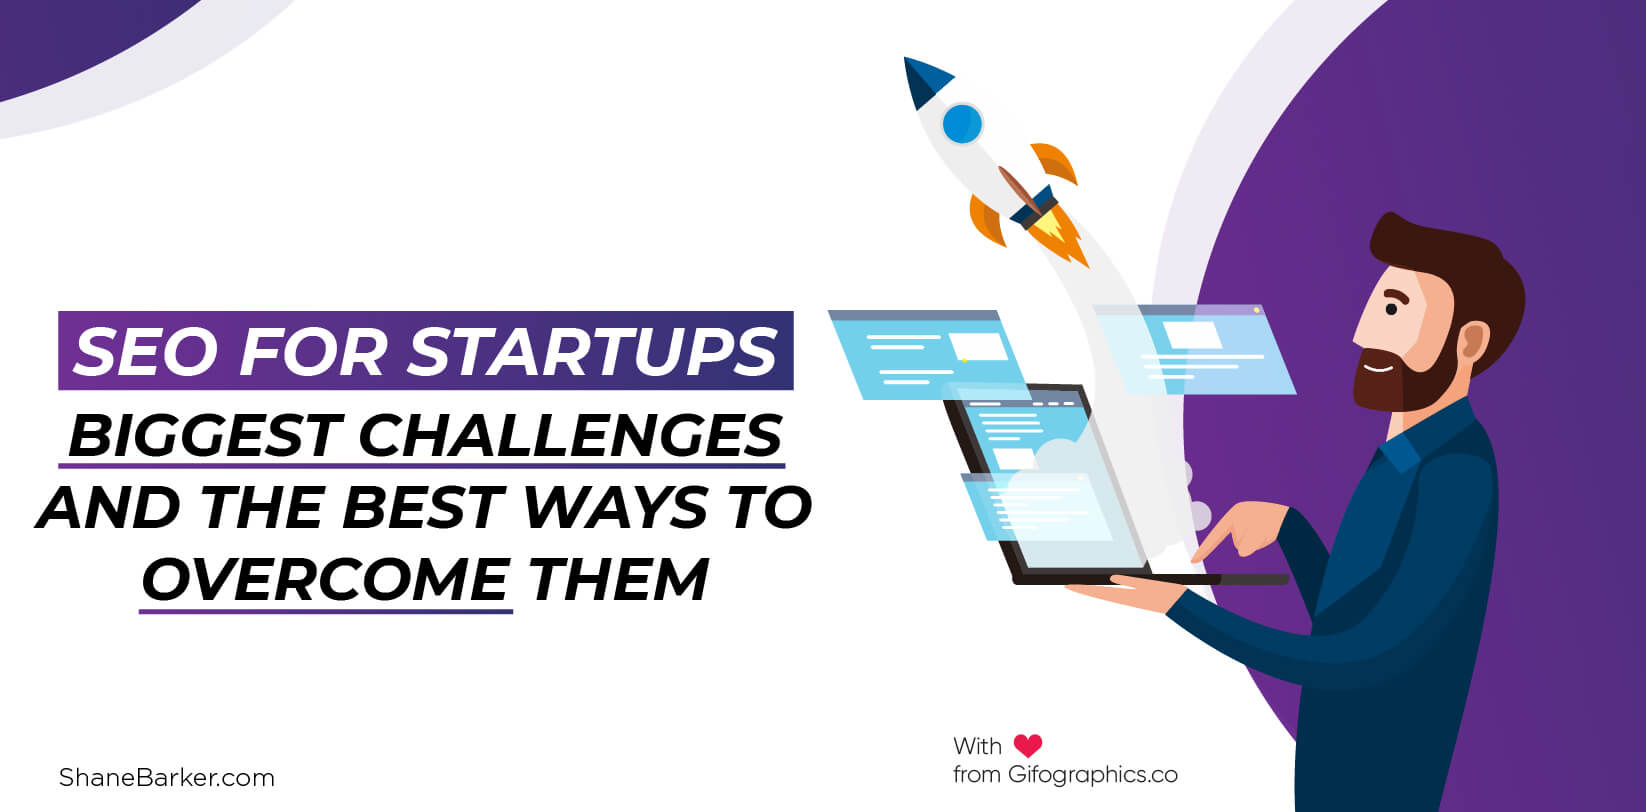 SEO for Startups Biggest Challenges and the Best Ways to Overcome Them